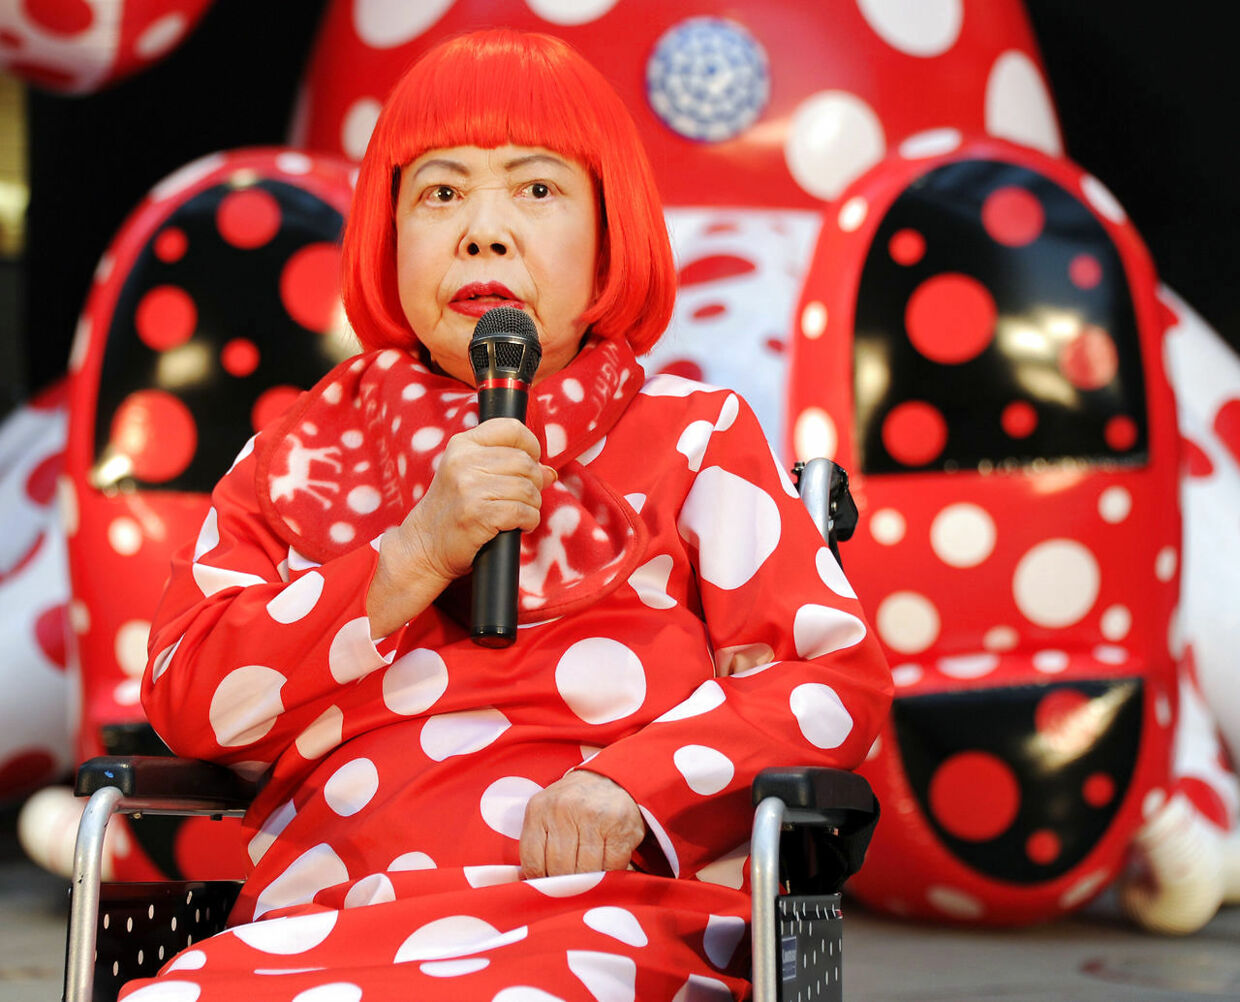 Japanese avant-garde artist Yayoi Kusama answers questions during a press preview for an 32-hour art event at Roppongi shopping district in Tokyo on March 22, 2012. AFP PHOTO/Toru YAMANAKA